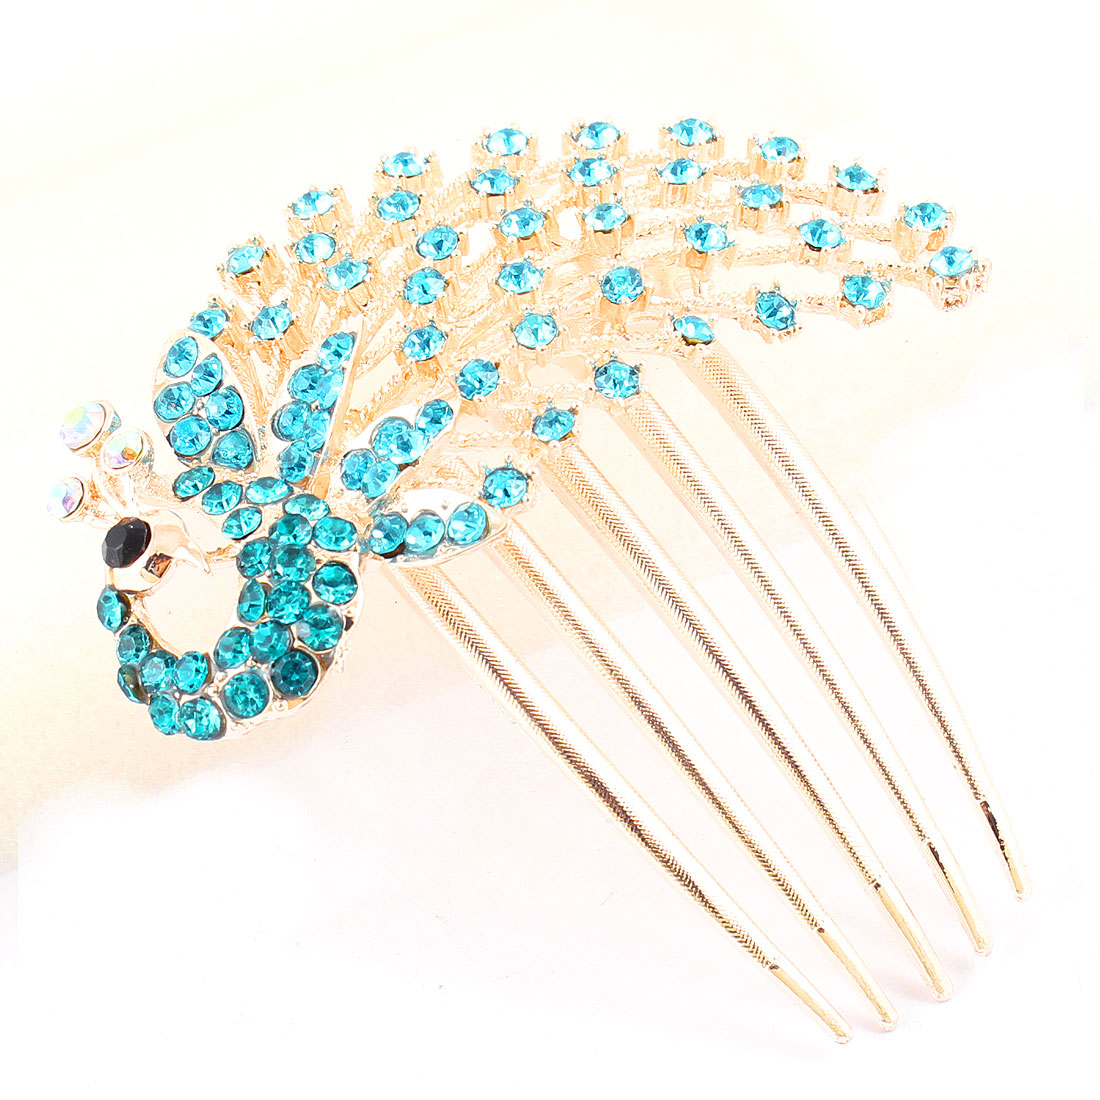 Lady Glittery Plastic Rhinestone Detailing Metal Comb Hairpin Turquoise